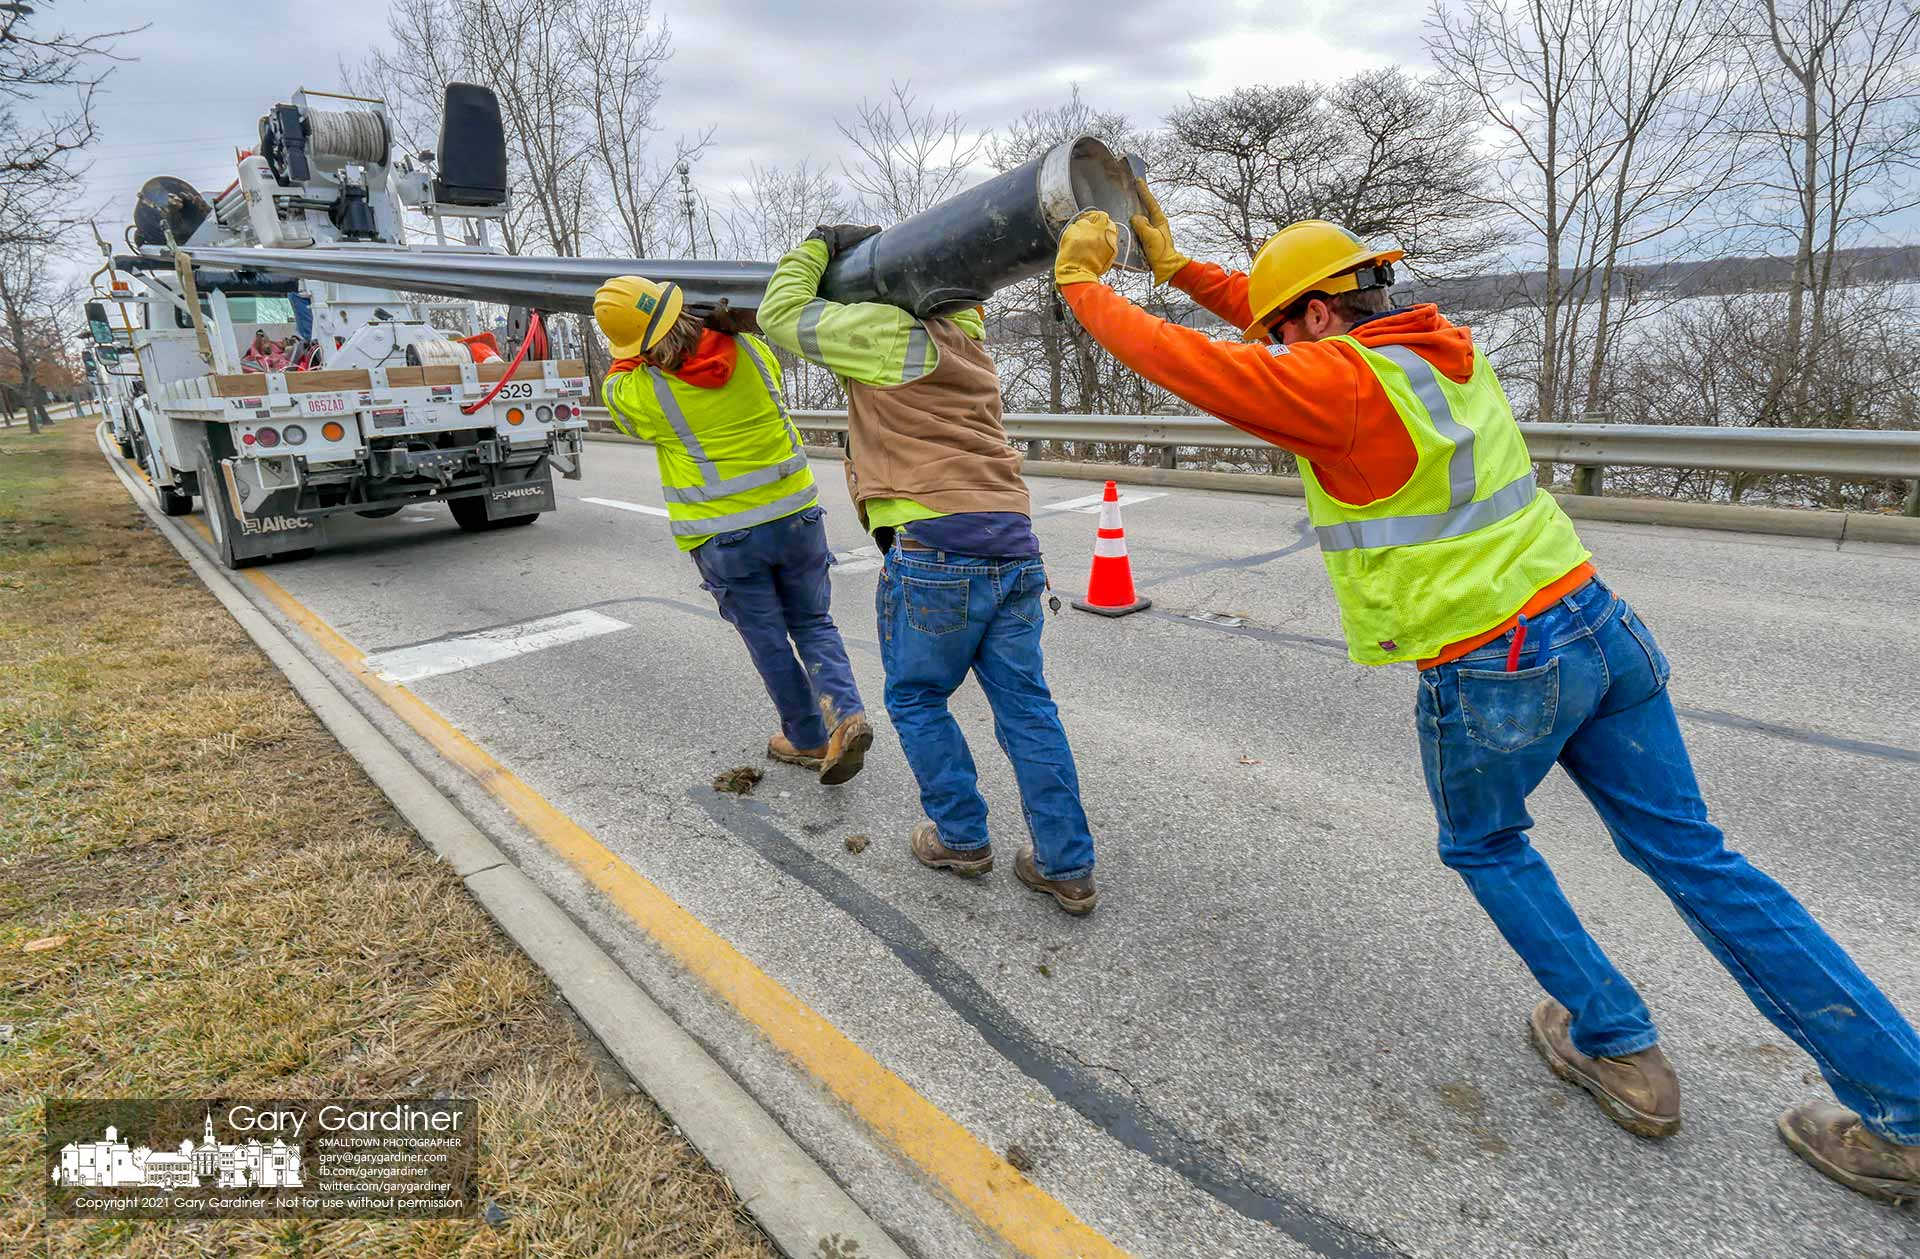 City electric crews remove a streetlight pole that was broken at its base recently in a car crash on Sunbury Road near East College. Ave. My Final Photo for Feb. 24, 2021.